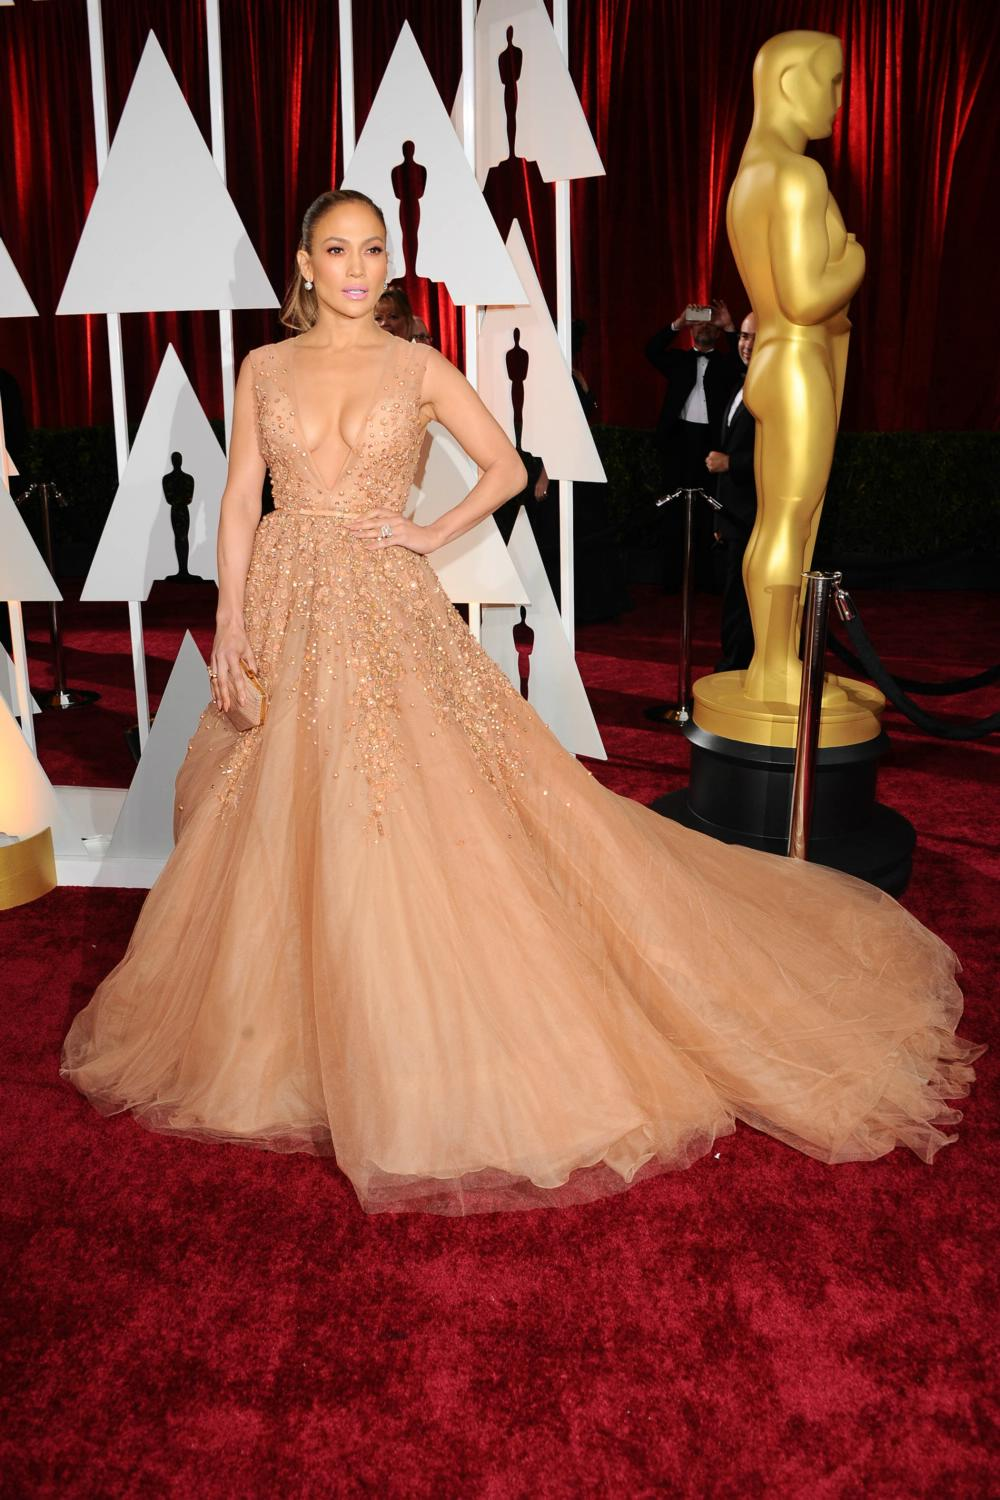 Jennifer lopez nude evening prom gown celebrity dresses oscars 2015 red carpet